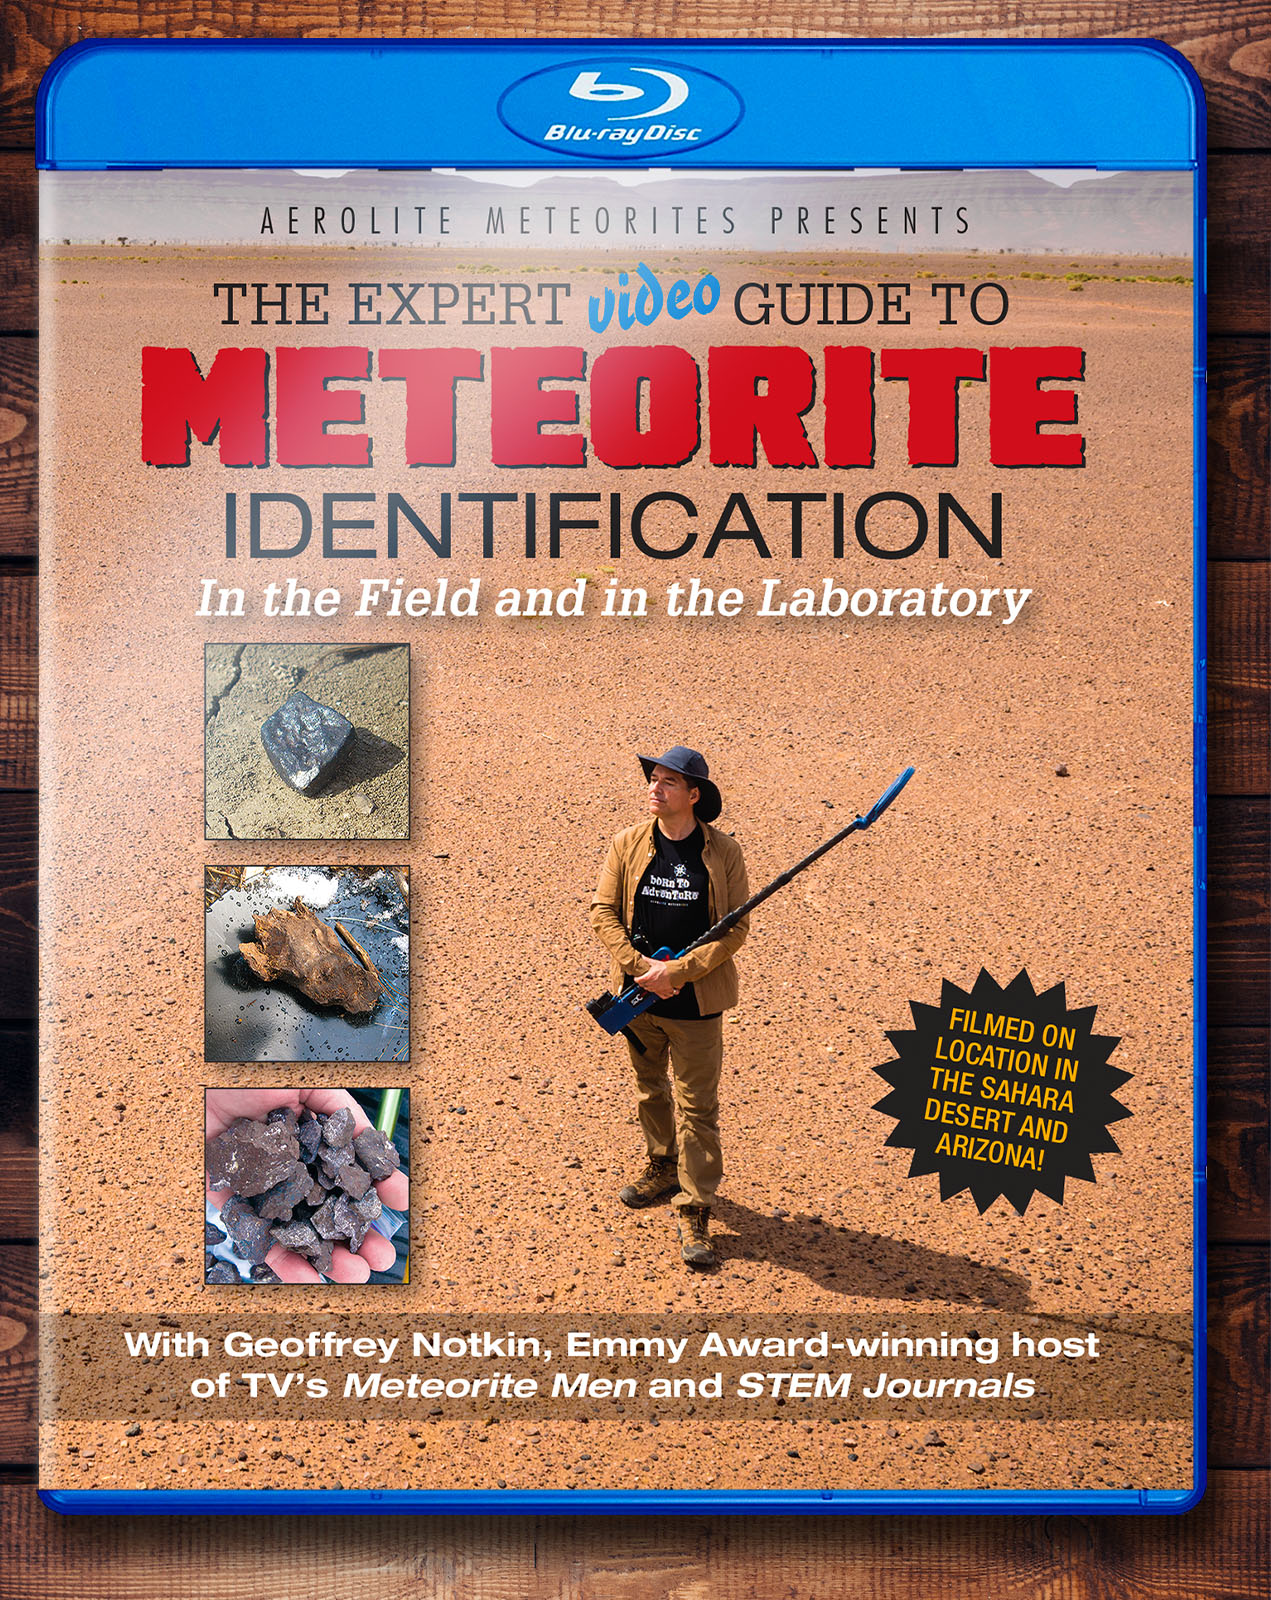 bluray on how to identify a meteorite